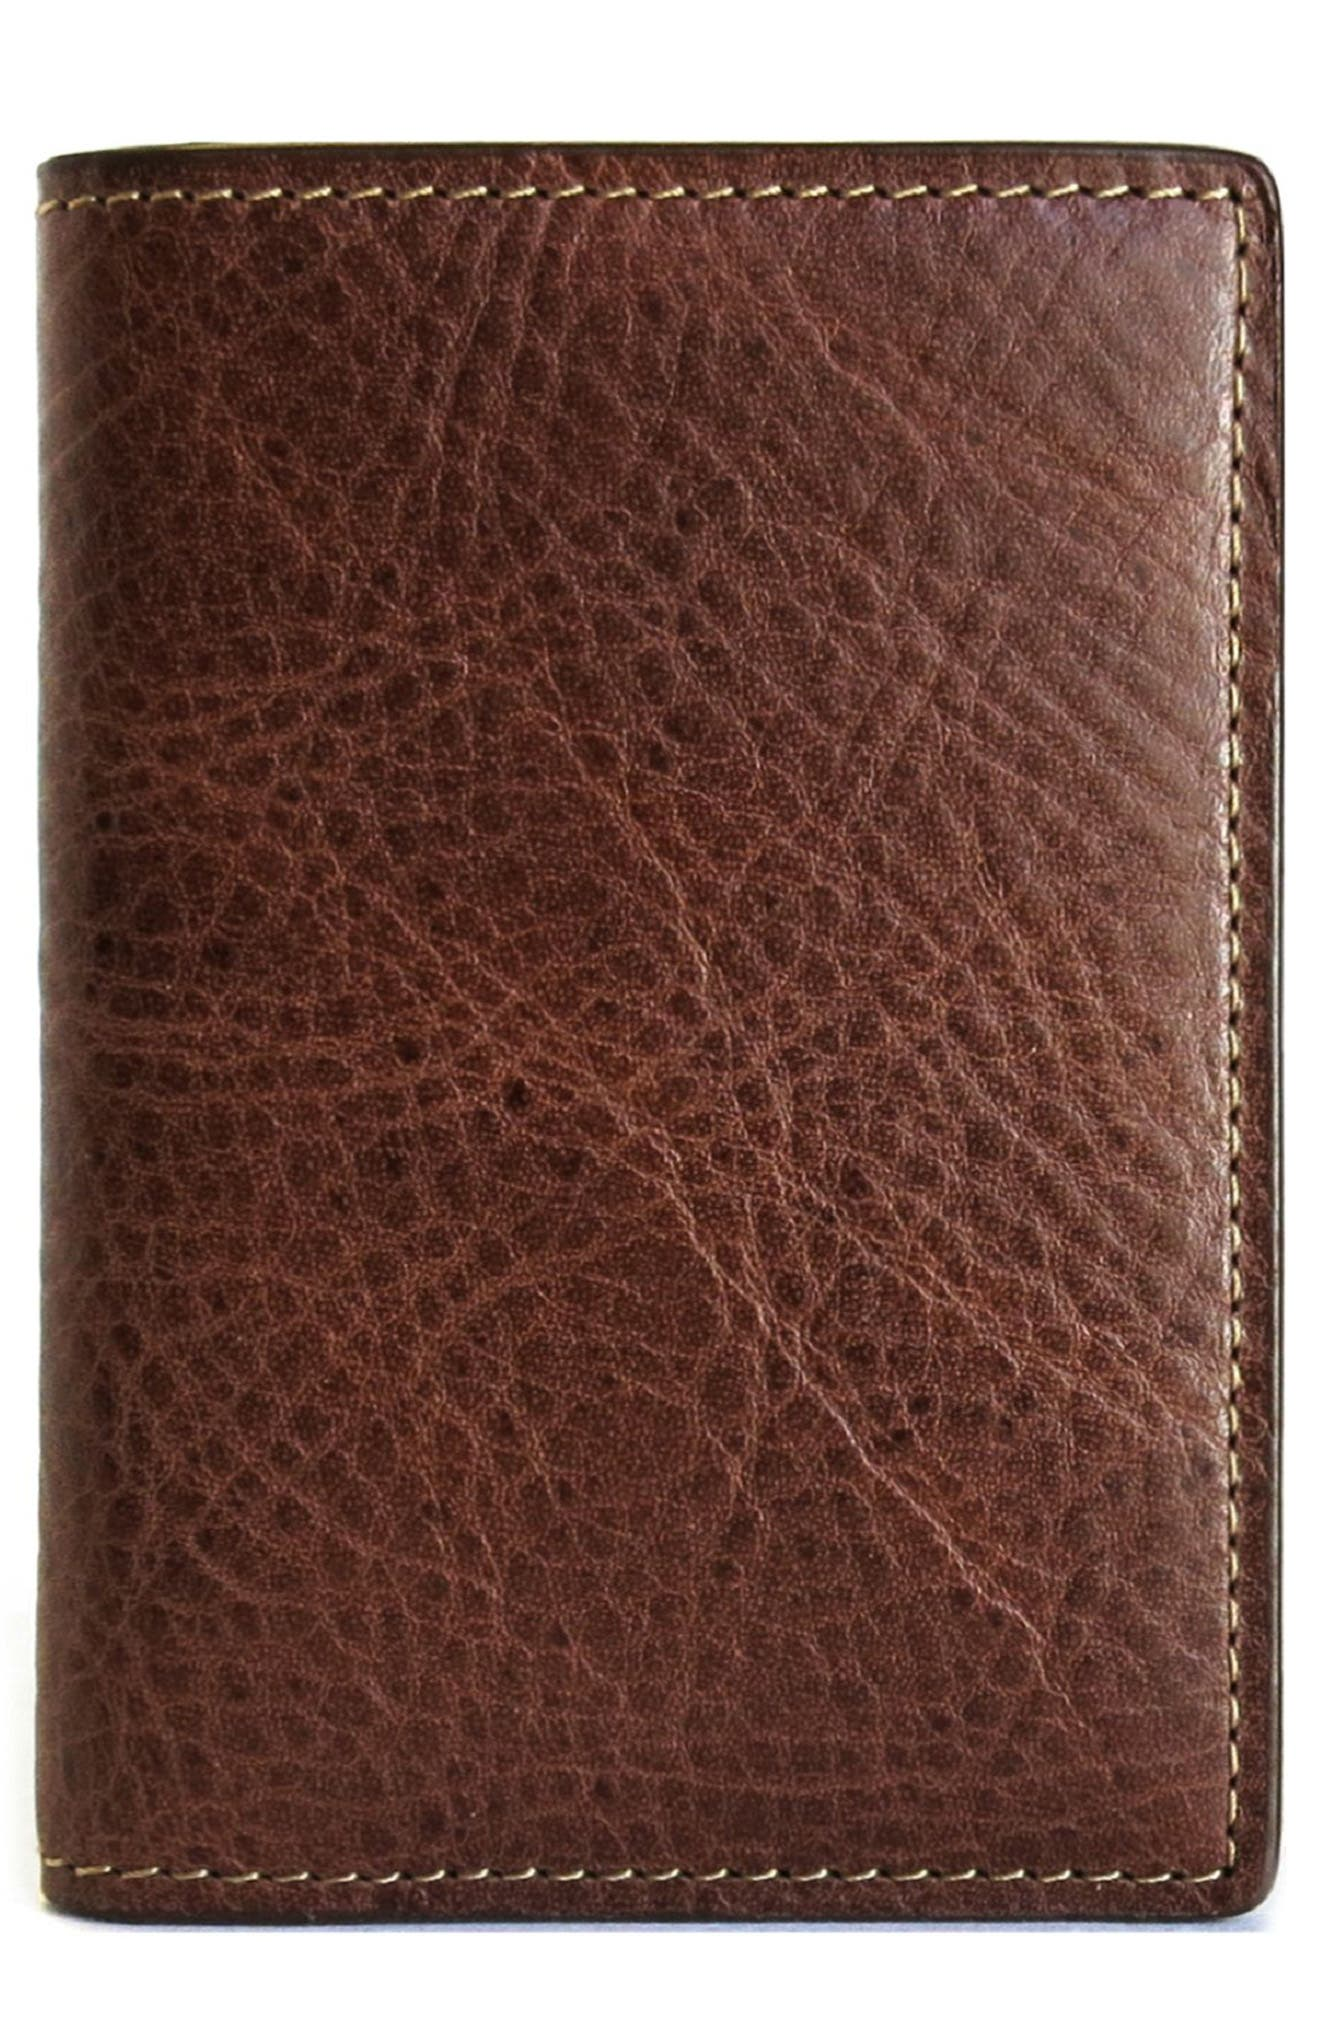 Caleb Leather Folding Card Case,                         Main,                         color, CHESTNUT